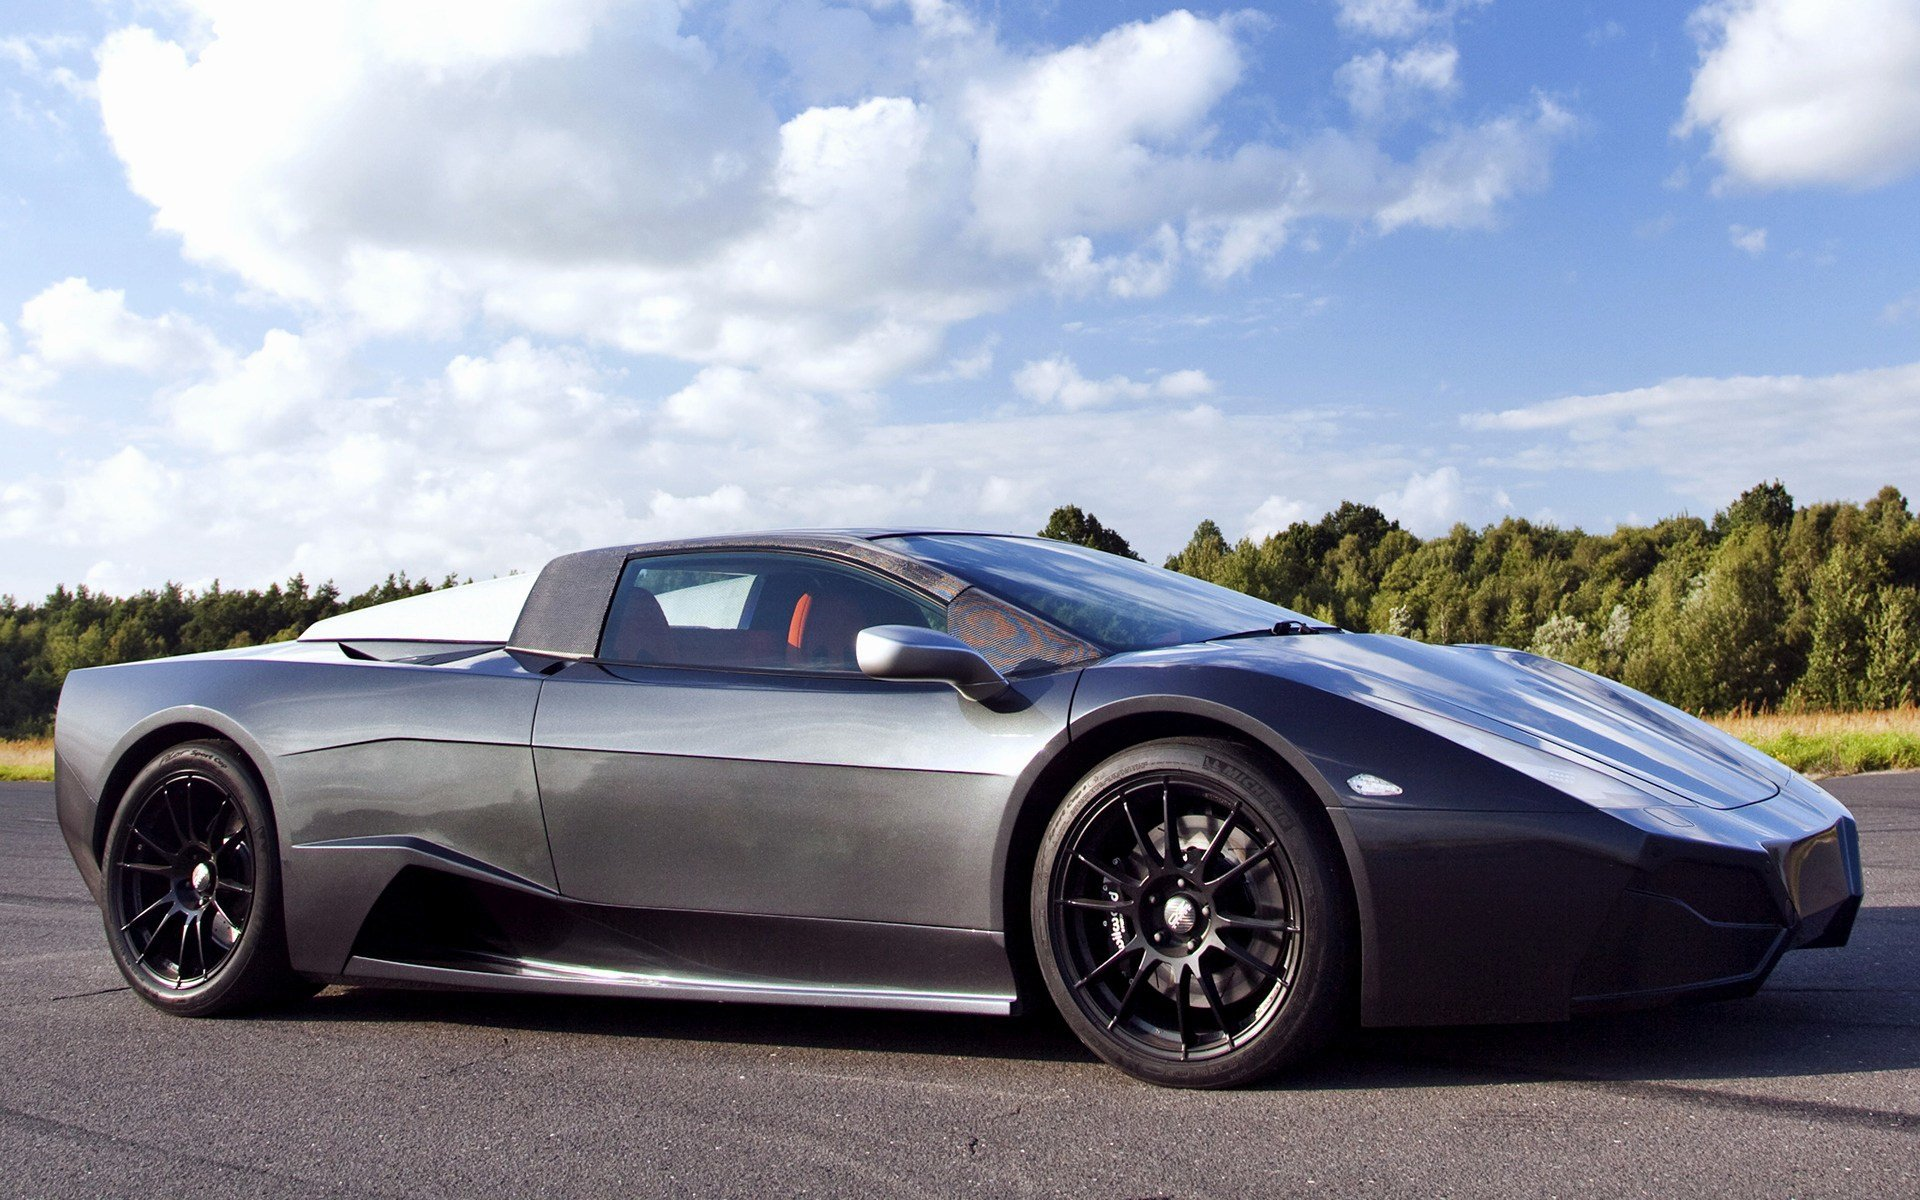 New 2011 Arrinera Venocara Concept Wallpapers And Hd Images On This Month